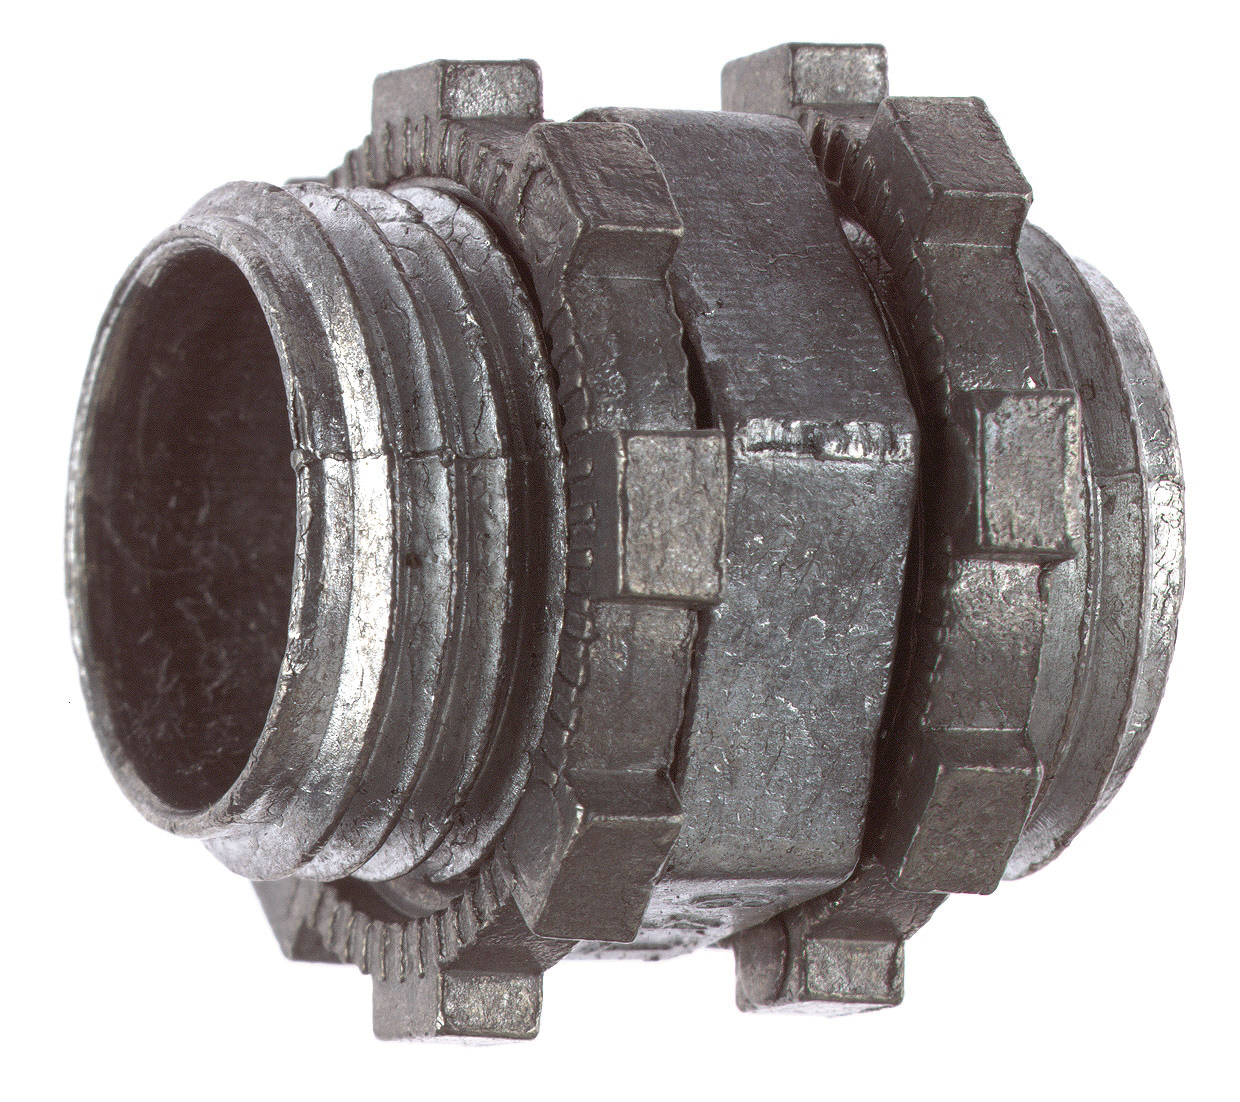 1/2 INCH SPACER CONNECTOR